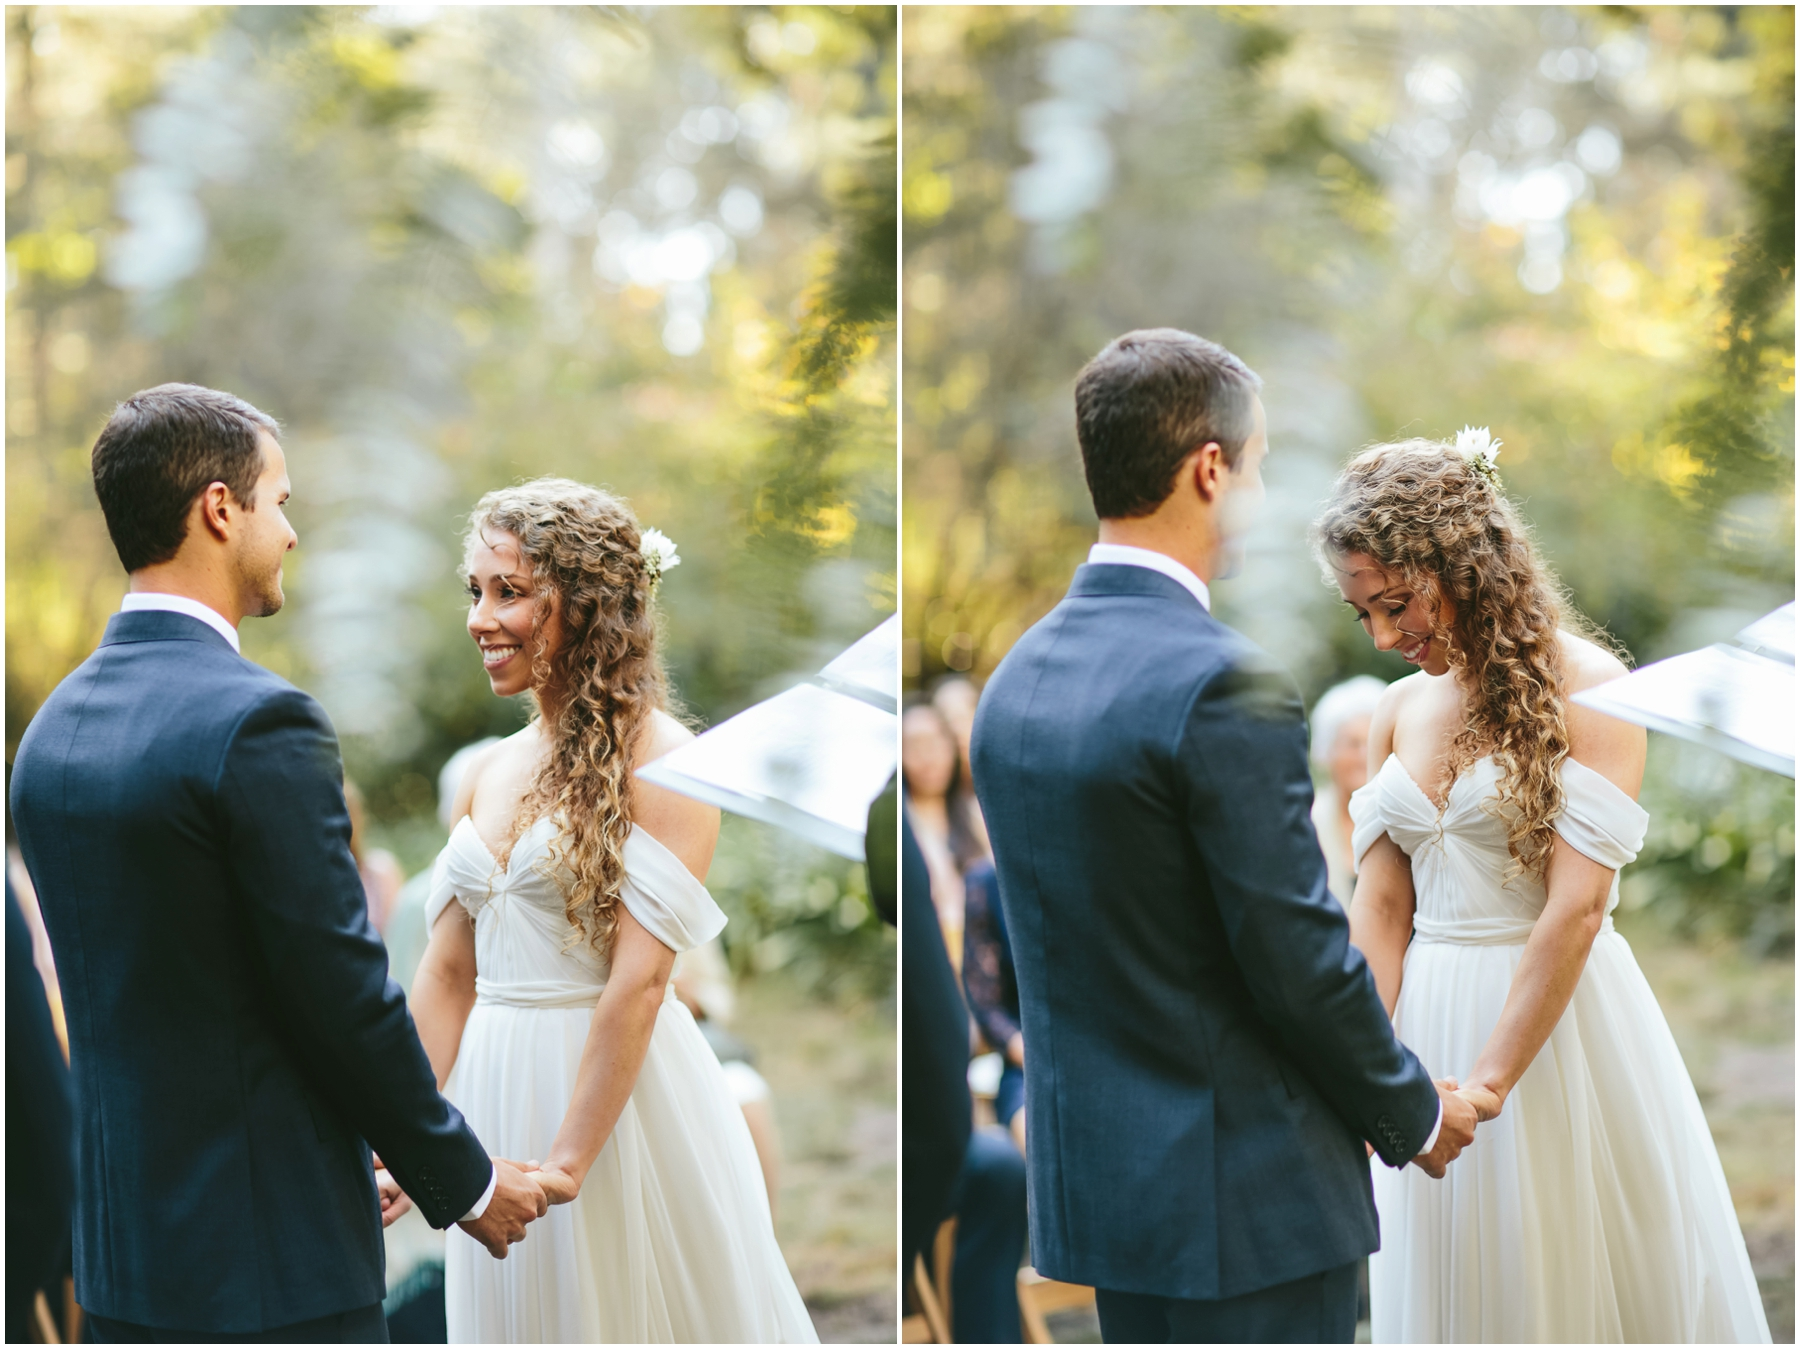 Emily+Paul-WEDDING_KellyBoitanoPhotography_0075